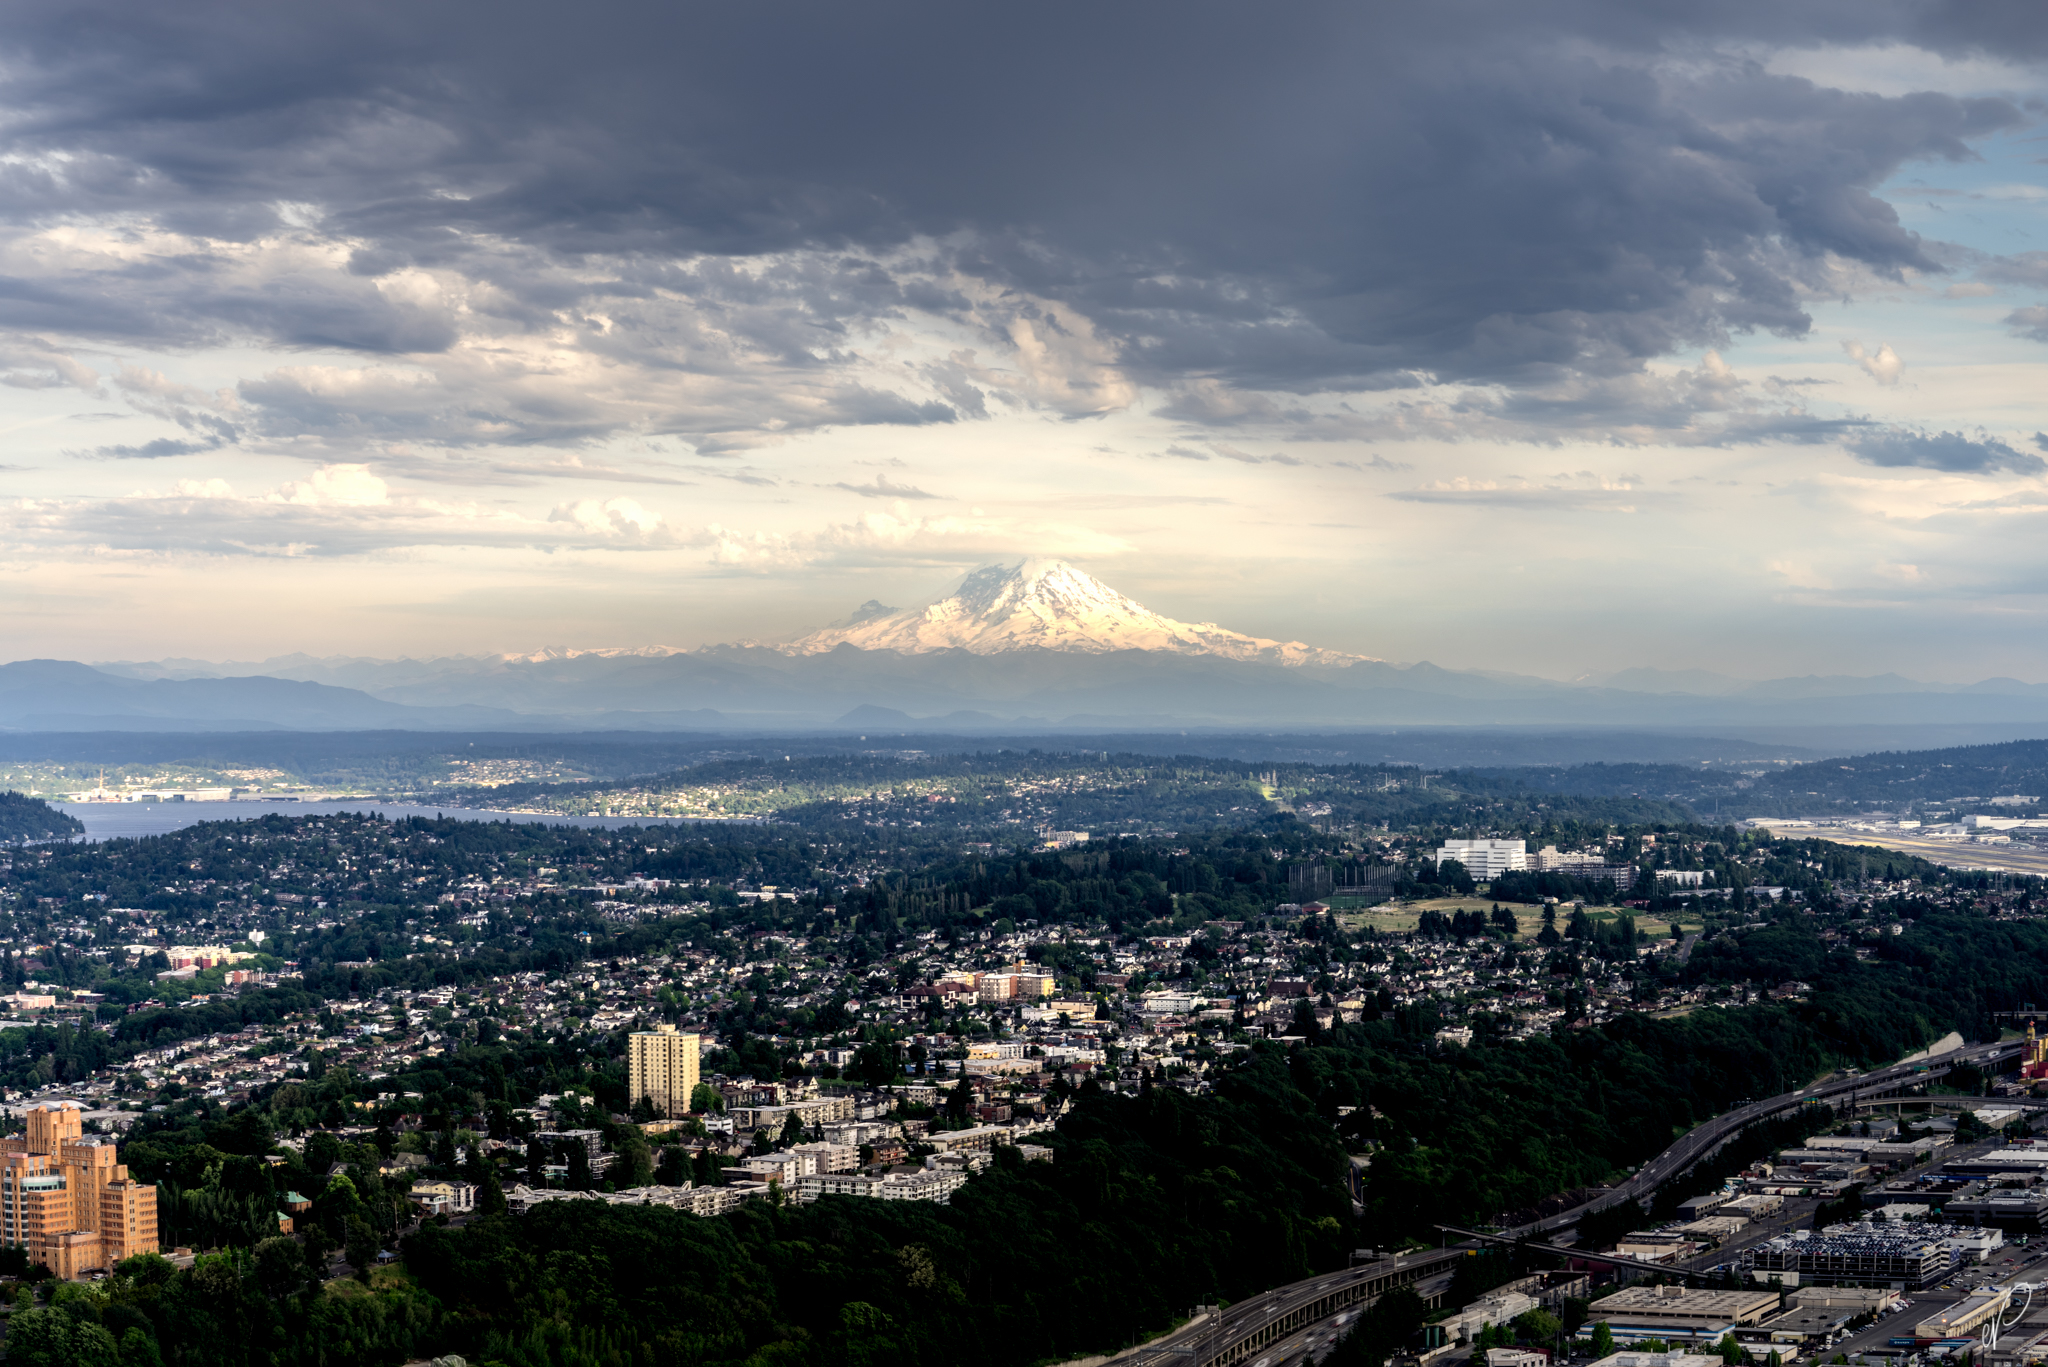 Mount Rainier, Big Tahoma, or Tacoma  as seen from Columbia Center, Downtown Seattle. This was the first photo I took of the mountain with a Lentincular cloud over it, which usually means a storm is incoming.